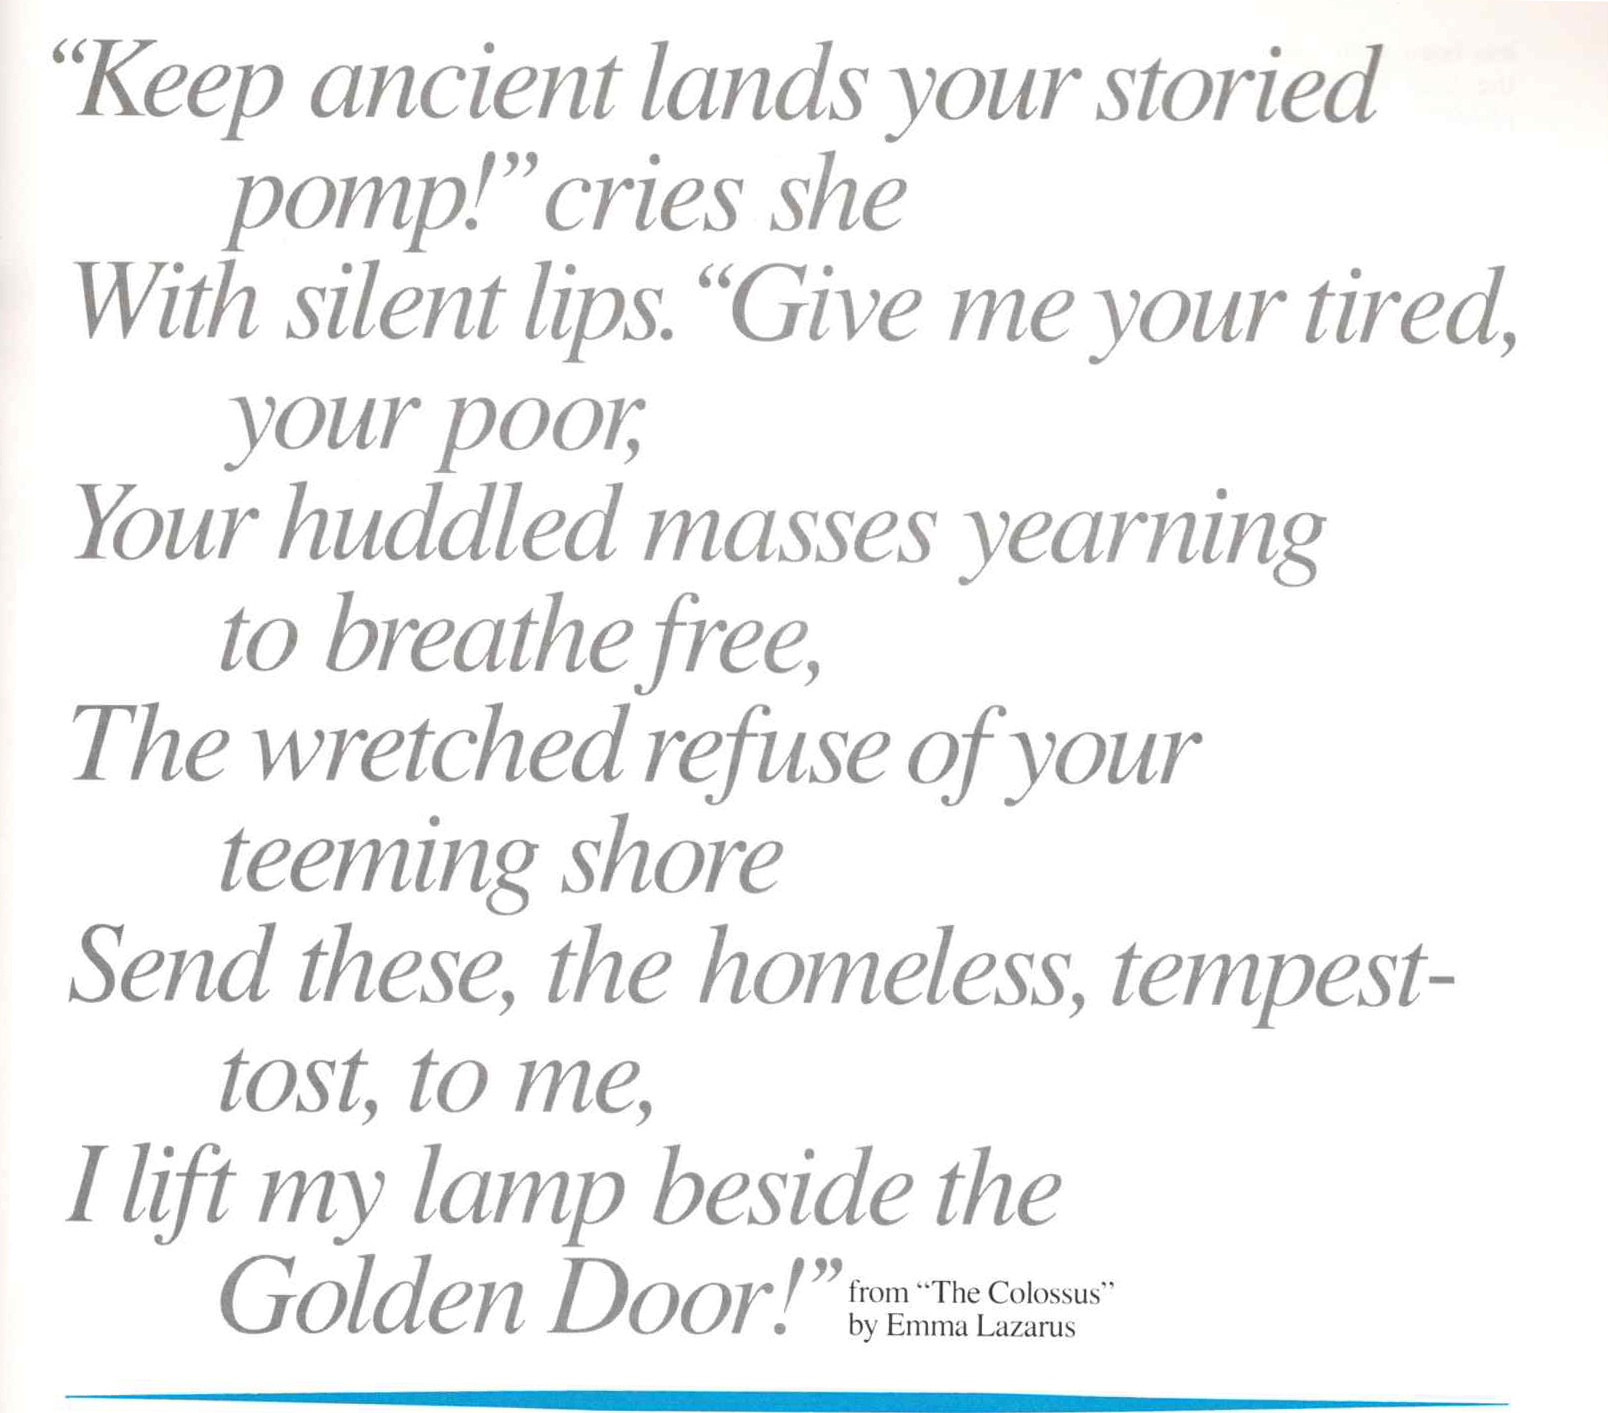 an excerpt from emma lazarus's poem the colossus